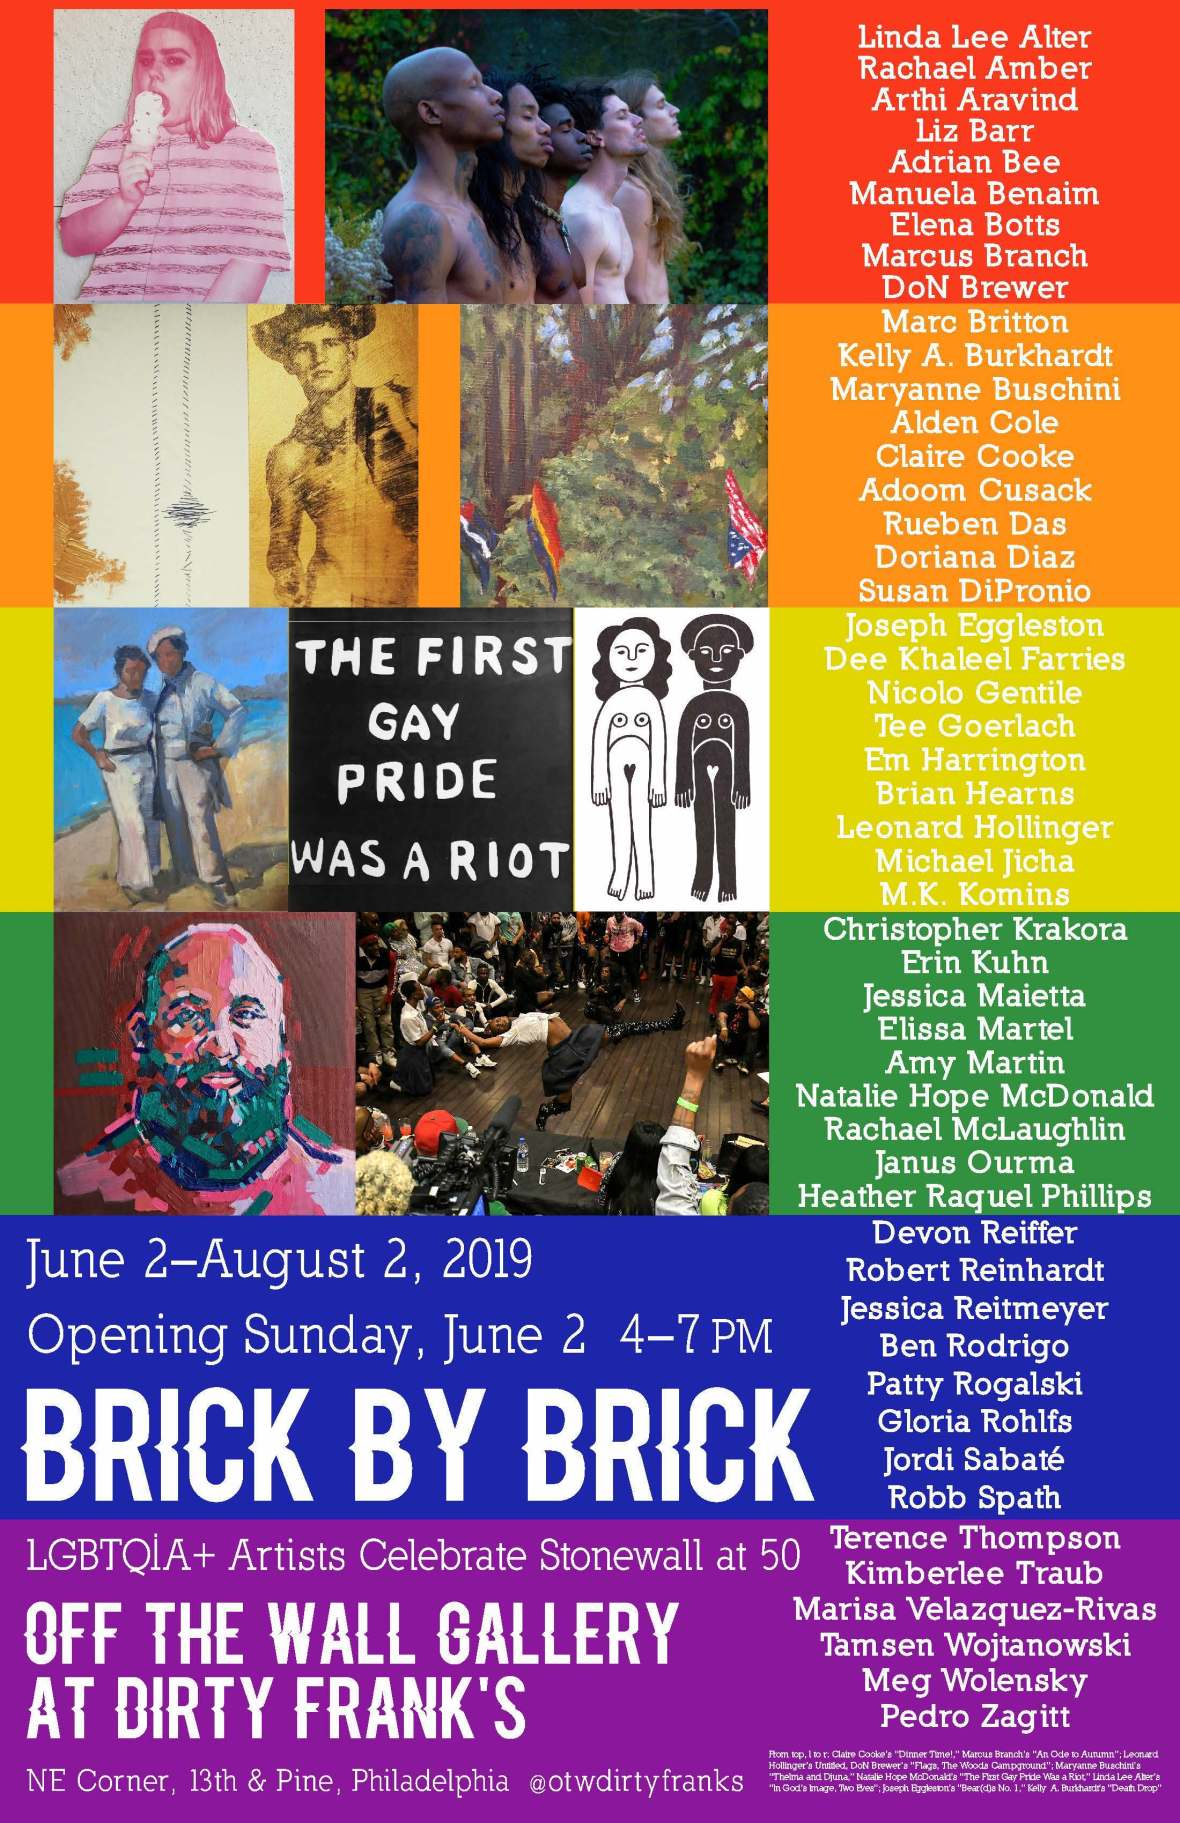 Brick by Brick Poster - PRESS COPY - 5-24-19